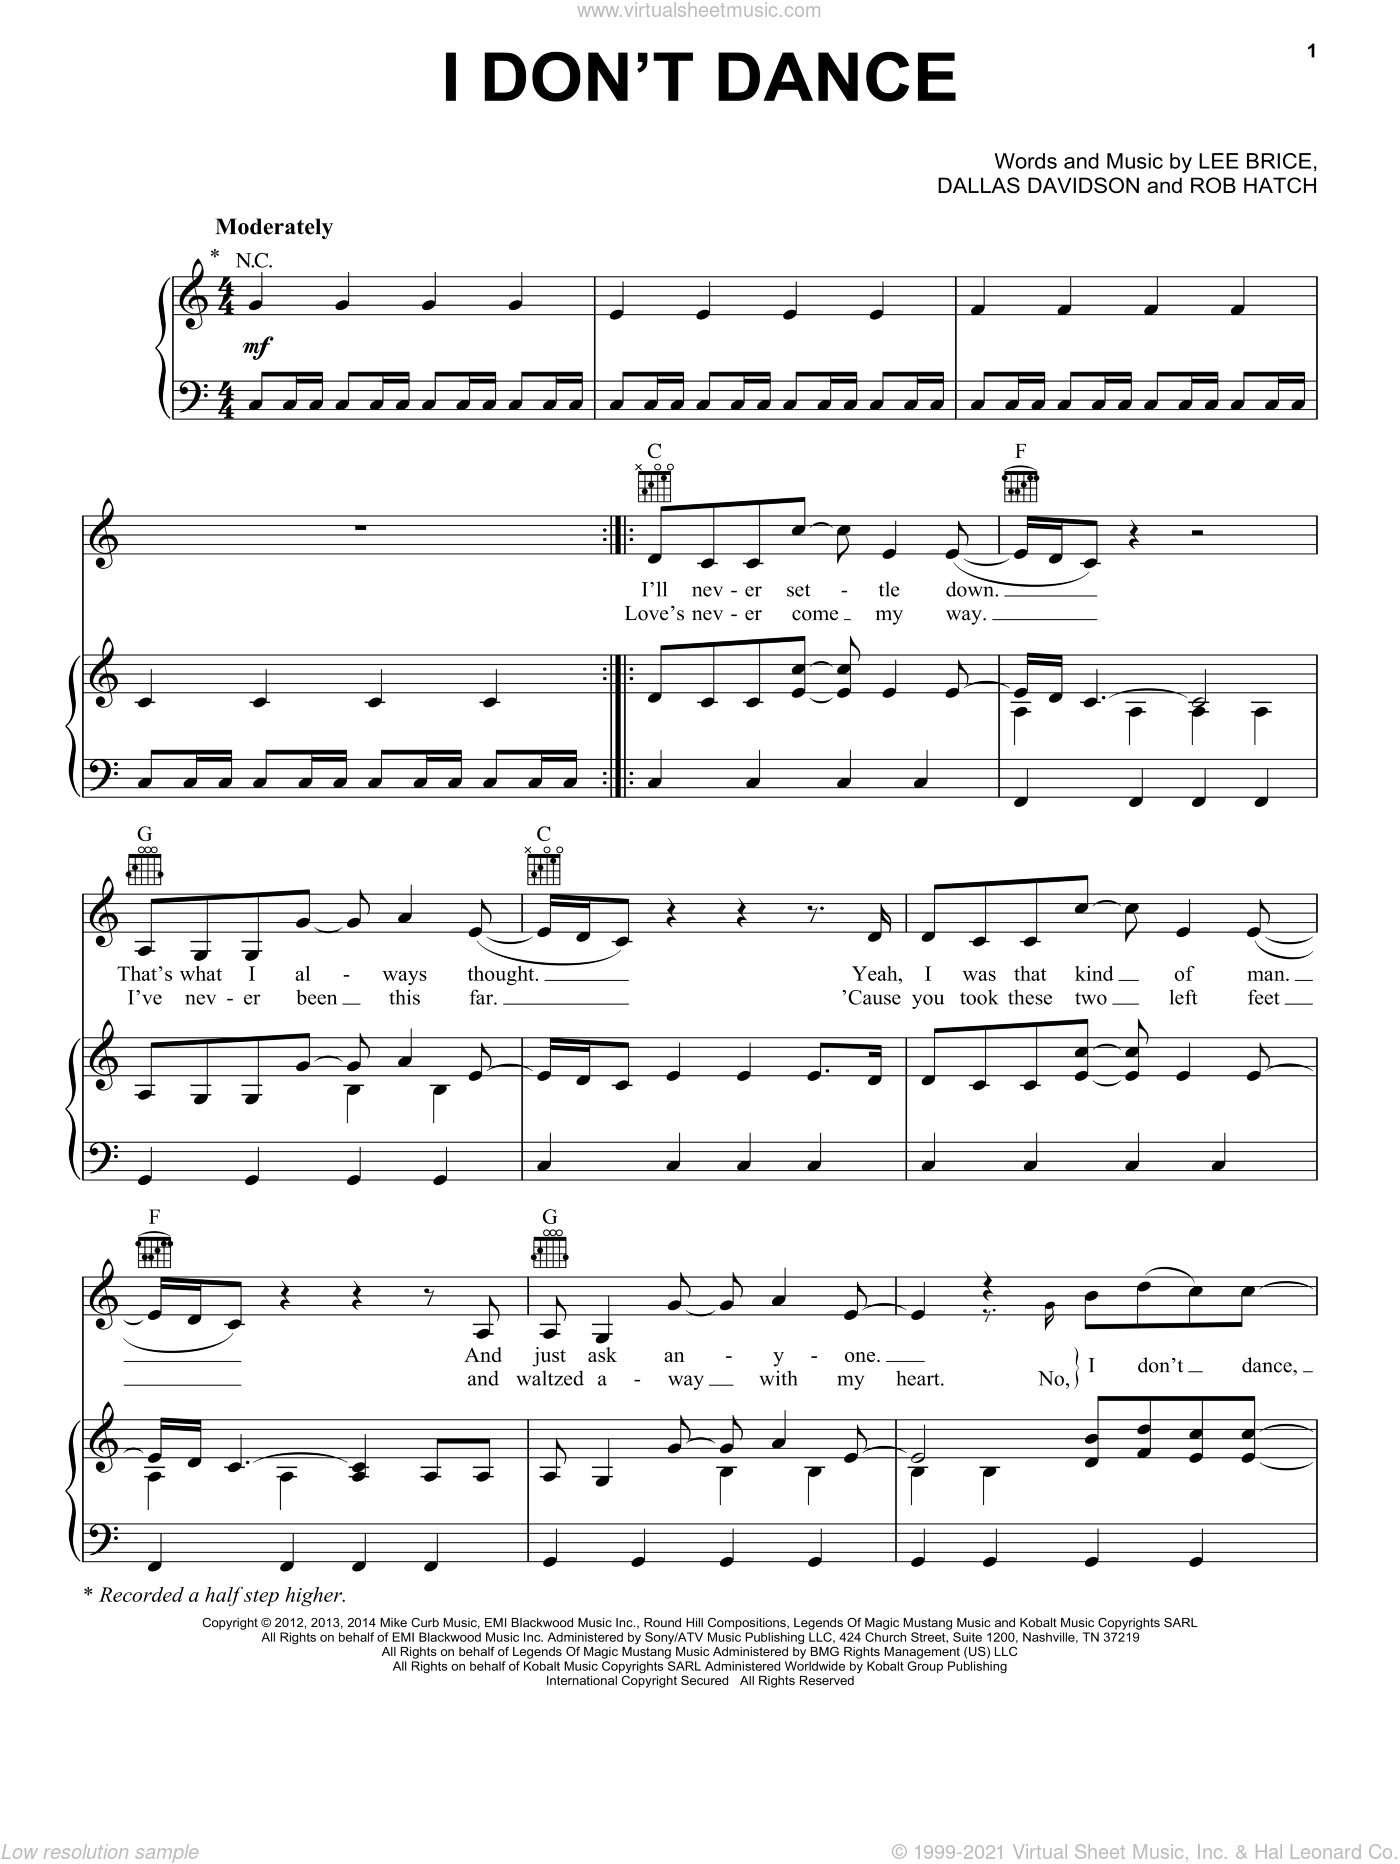 I Don't Dance sheet music for voice, piano or guitar by Lee Brice, Dallas Davidson and Rob Hatch, intermediate skill level